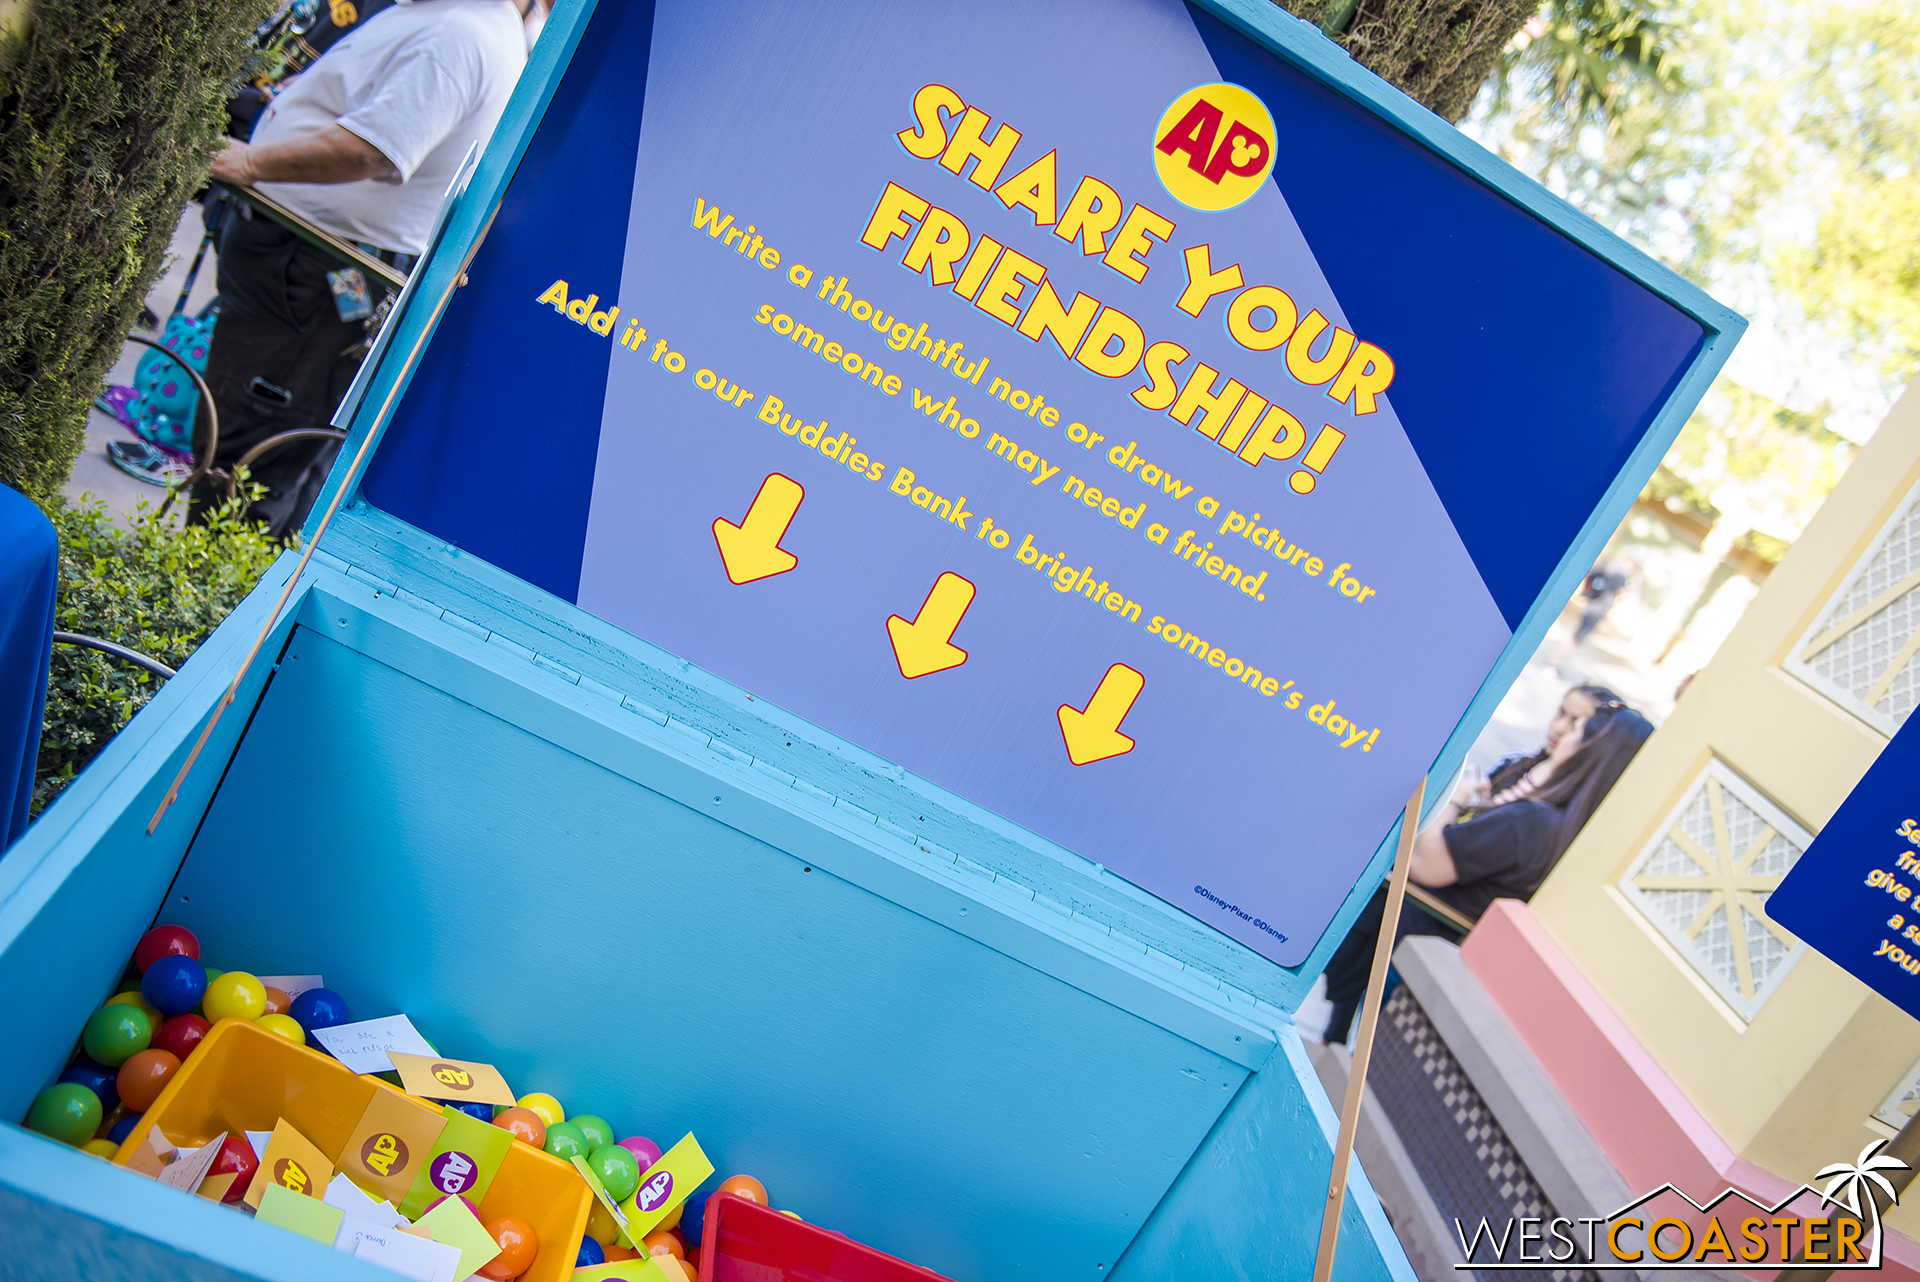 A trunk to write wish messages.